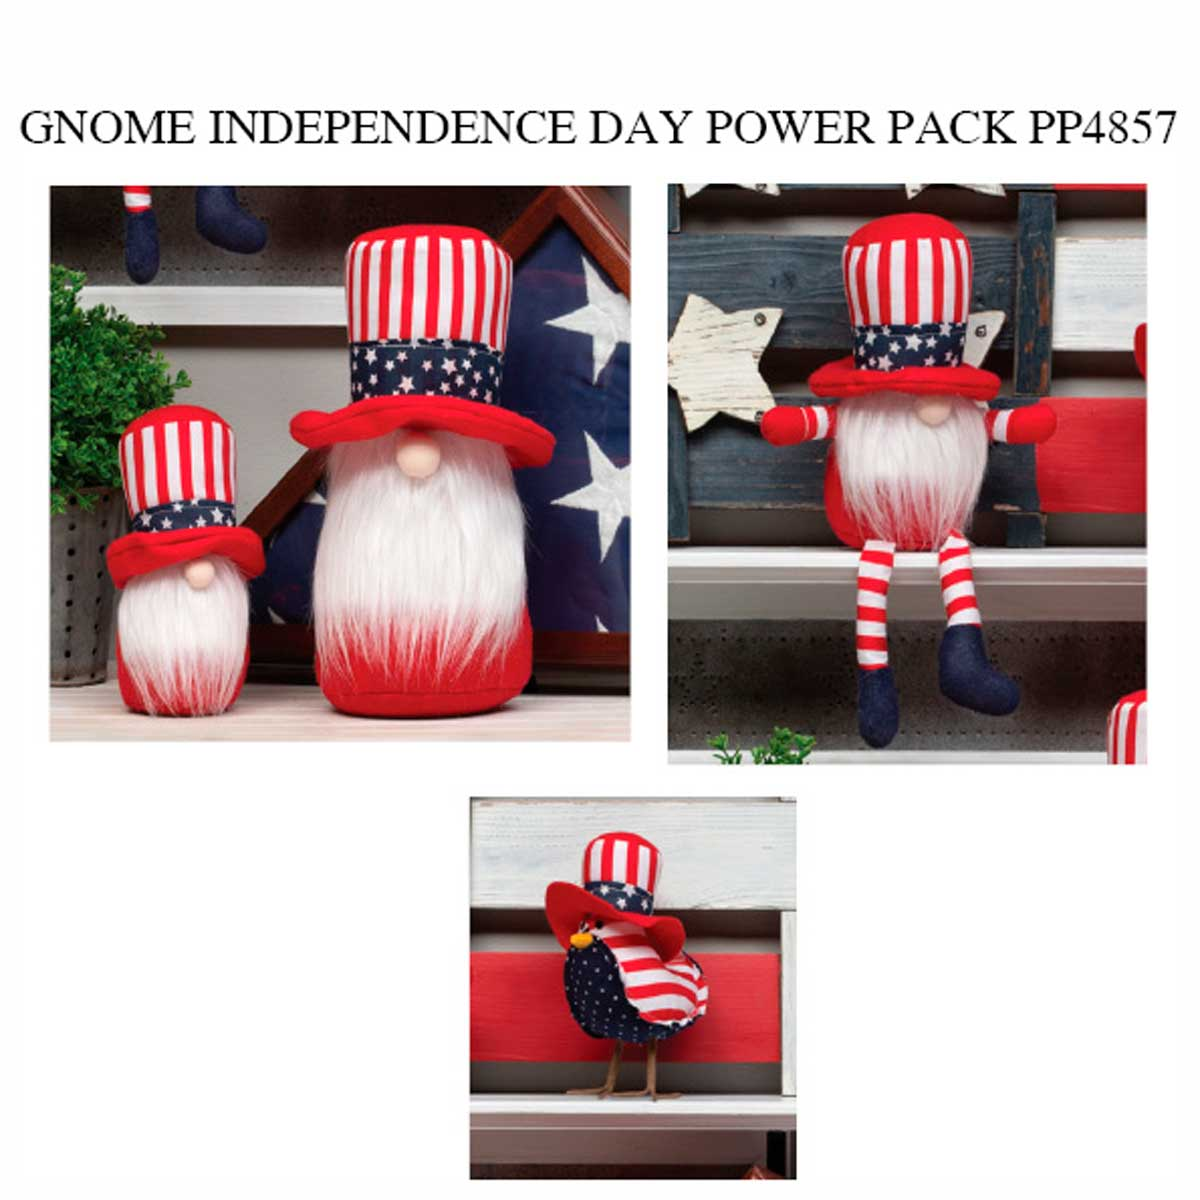 INDEPENDENCE DAY GNOME POWER PACK 14 units PP4857